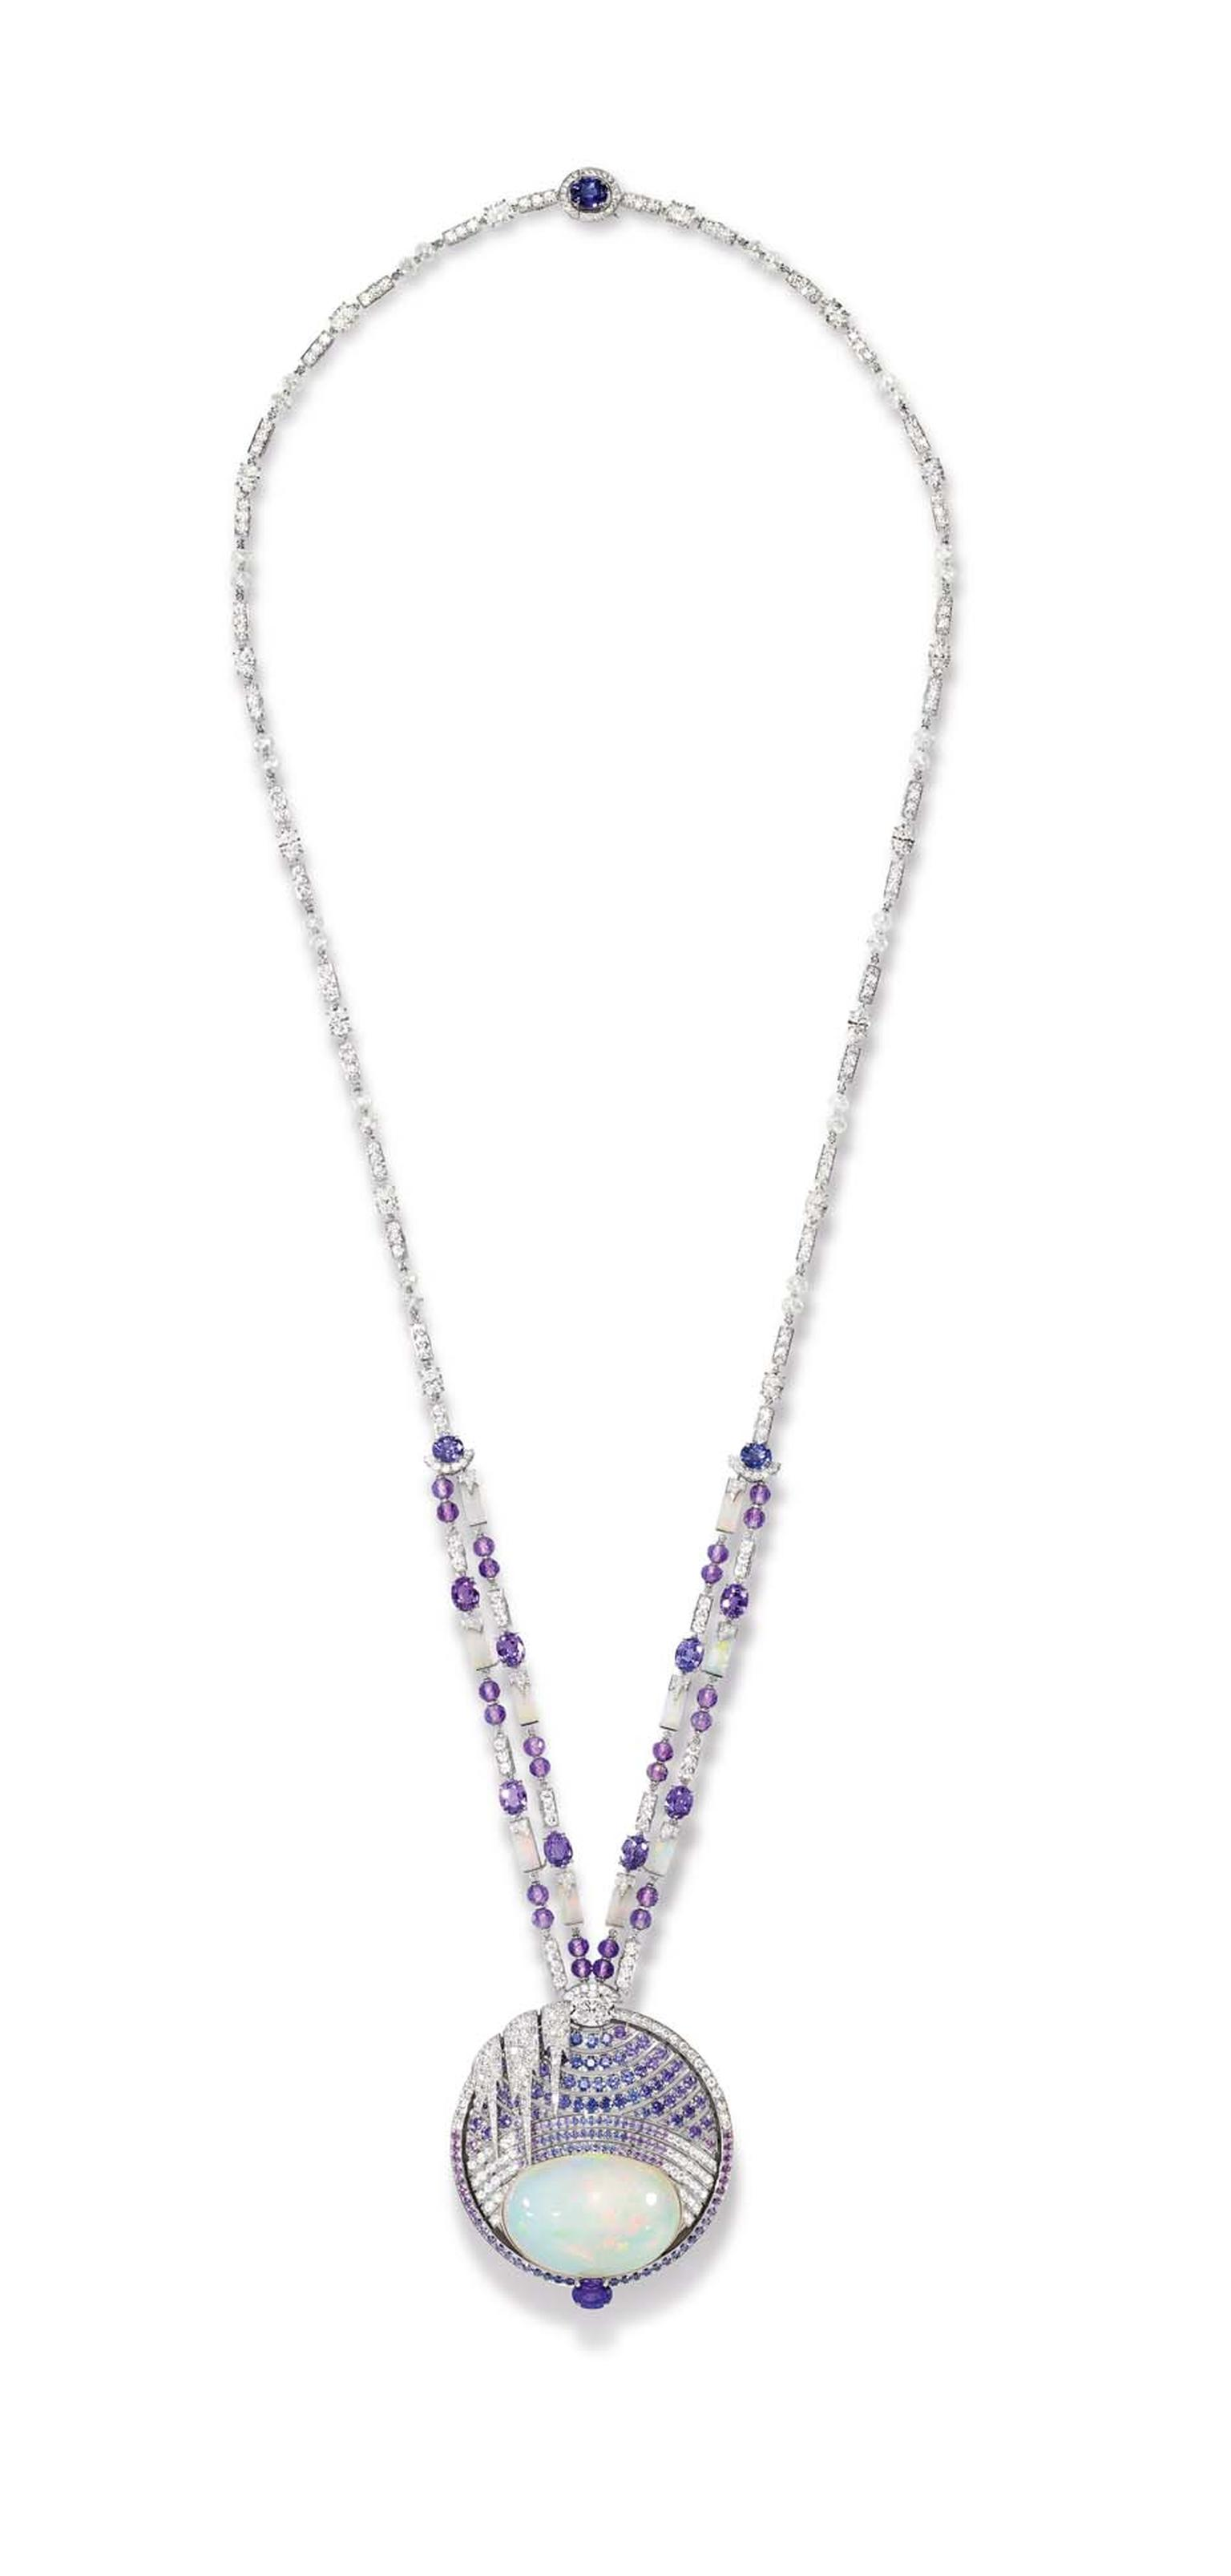 Chaumet Lumieres d'Eau high jewellery necklace in white gold, created for the Biennale des Antiquaires in Paris, set with a 59.58 ct cabochon-cut white opal from Ethiopia, round and oval-cut violet sapphires from Ceylon and Madagascar, oval-cut and brilli